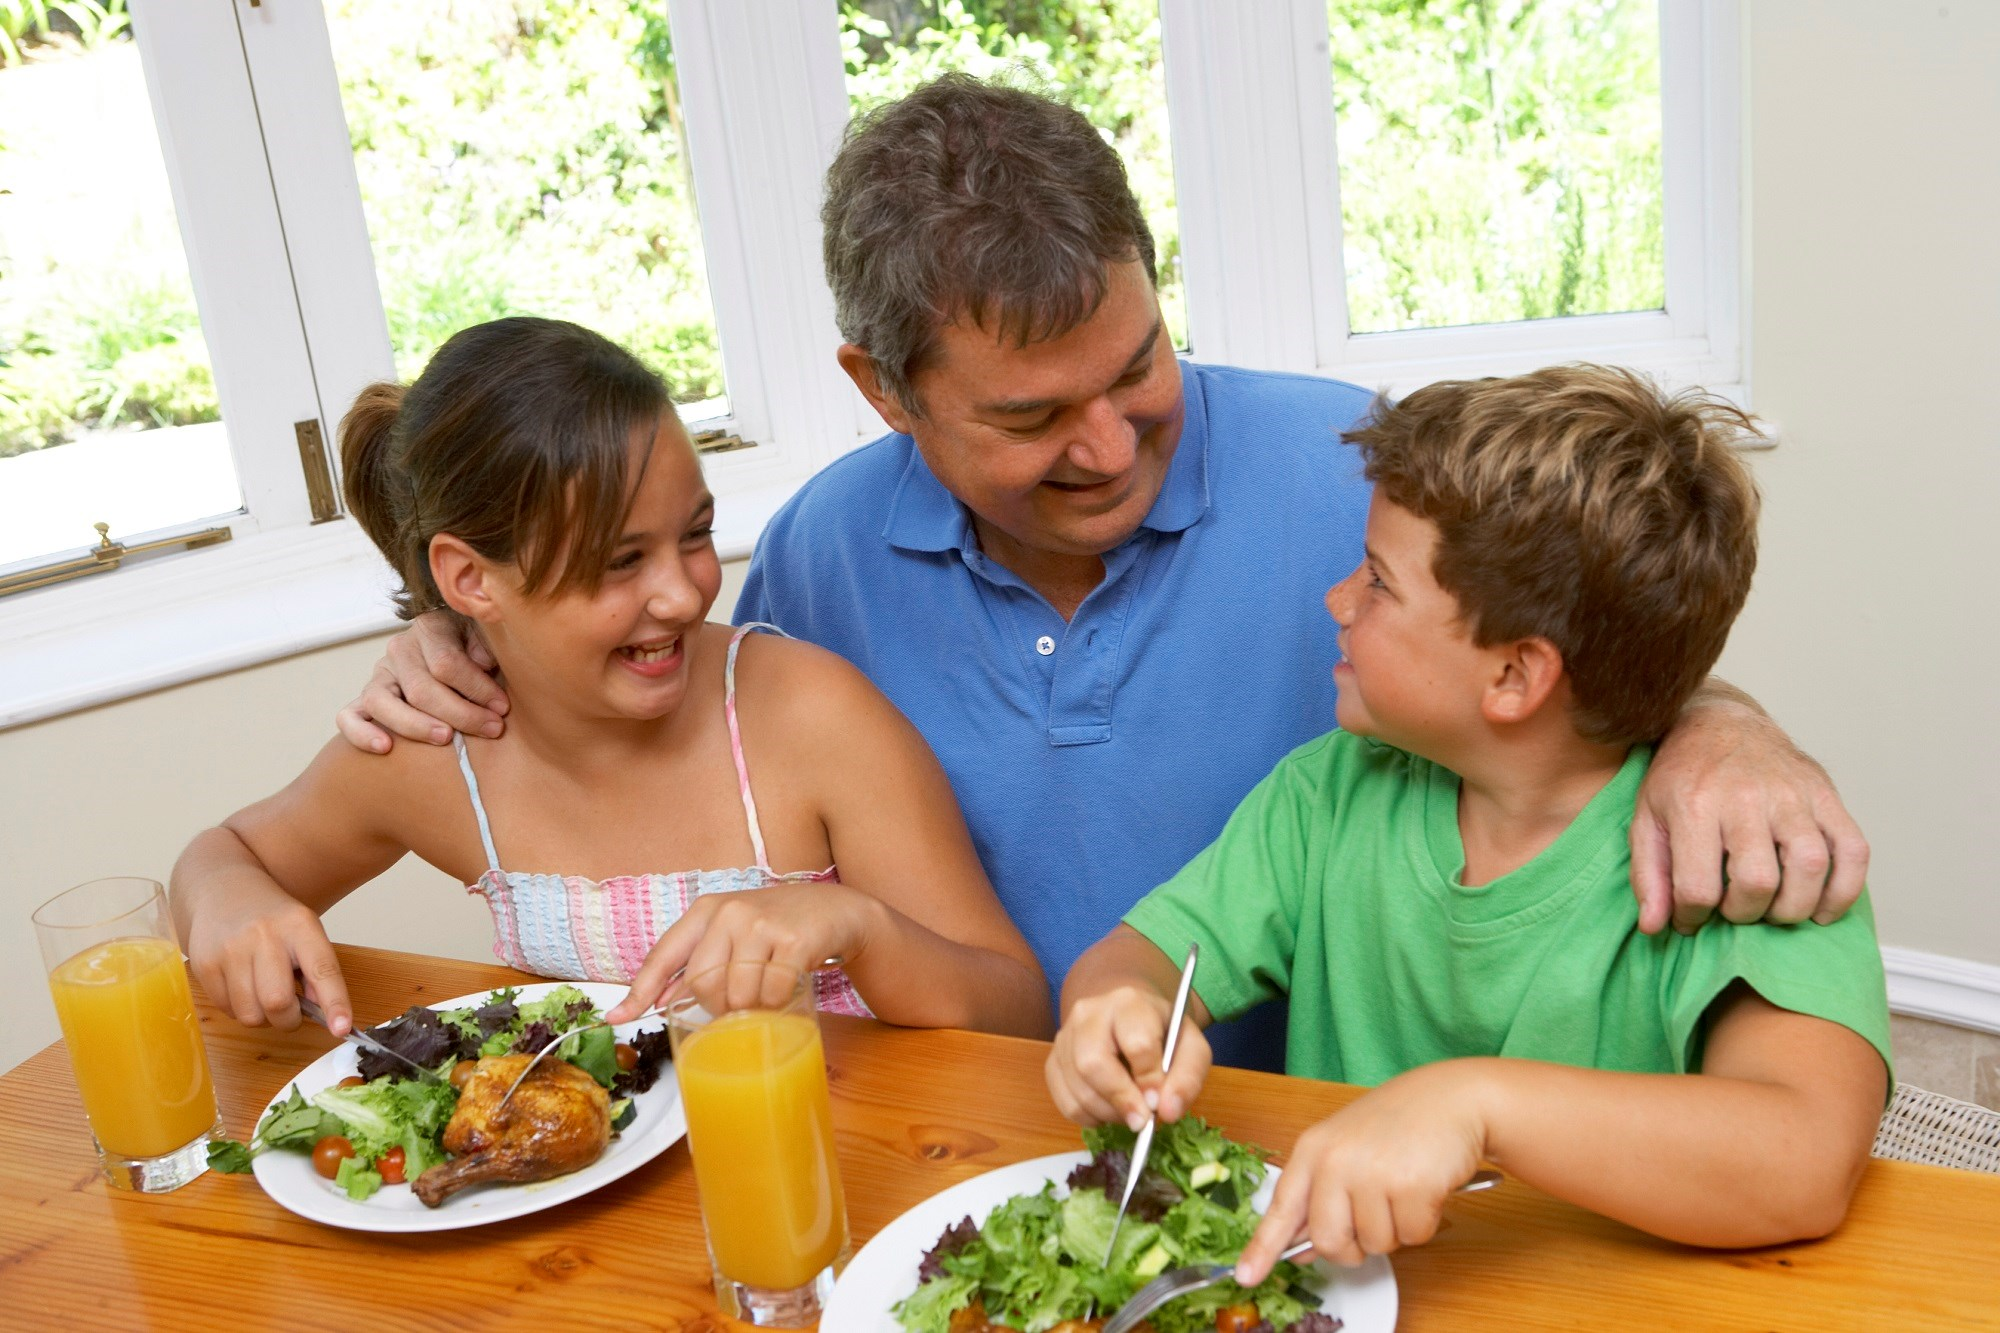 Appetite Awareness Training May Enhance Behavioral Strategies in Childhood Obesity